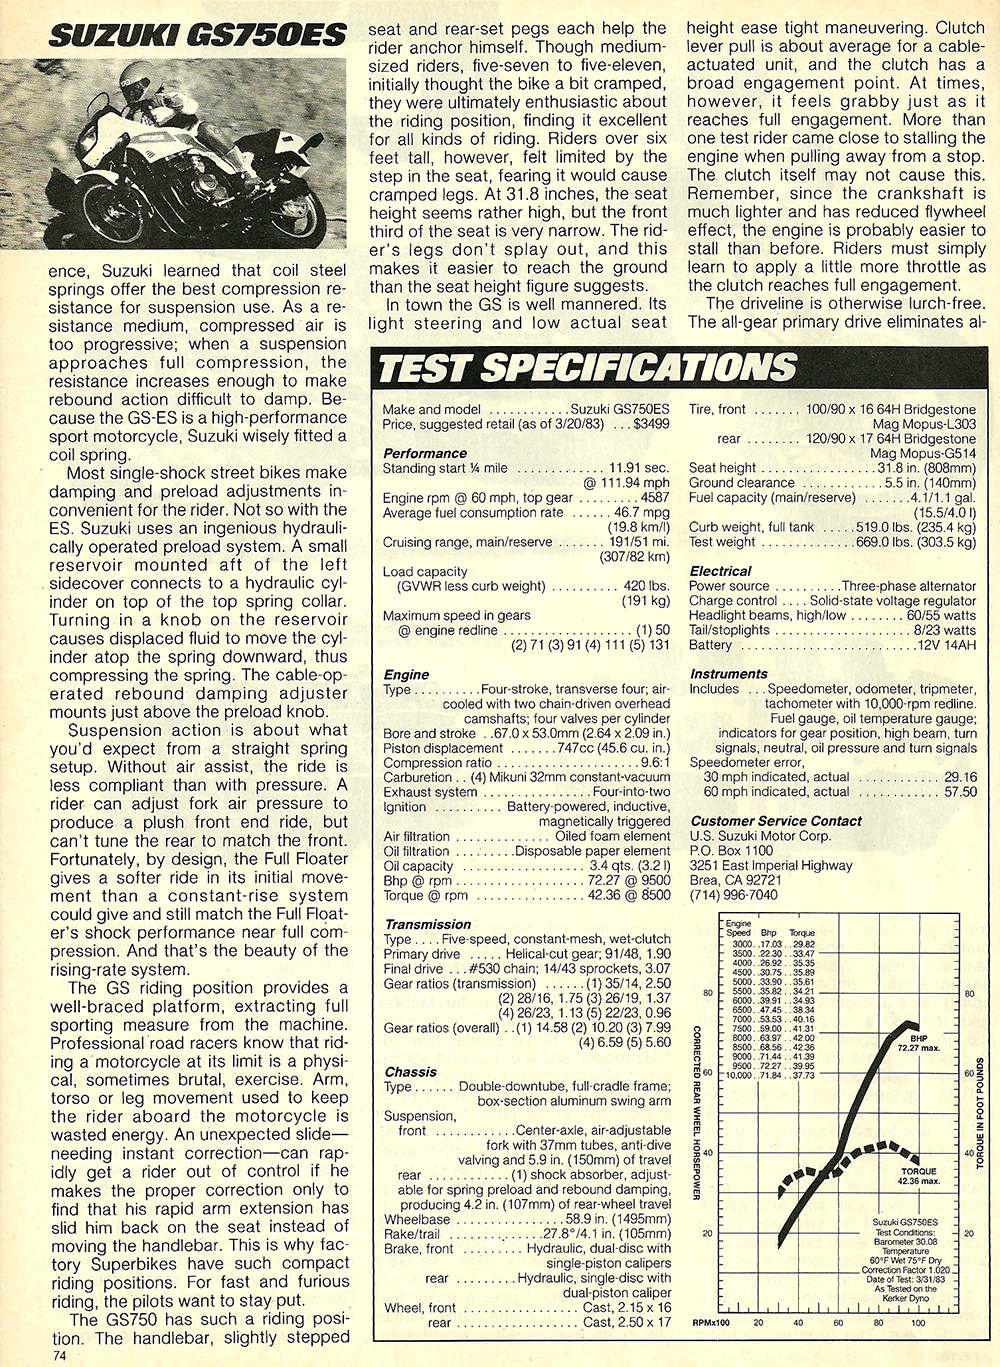 1983 Suzuki GS750ES road test 7.jpg